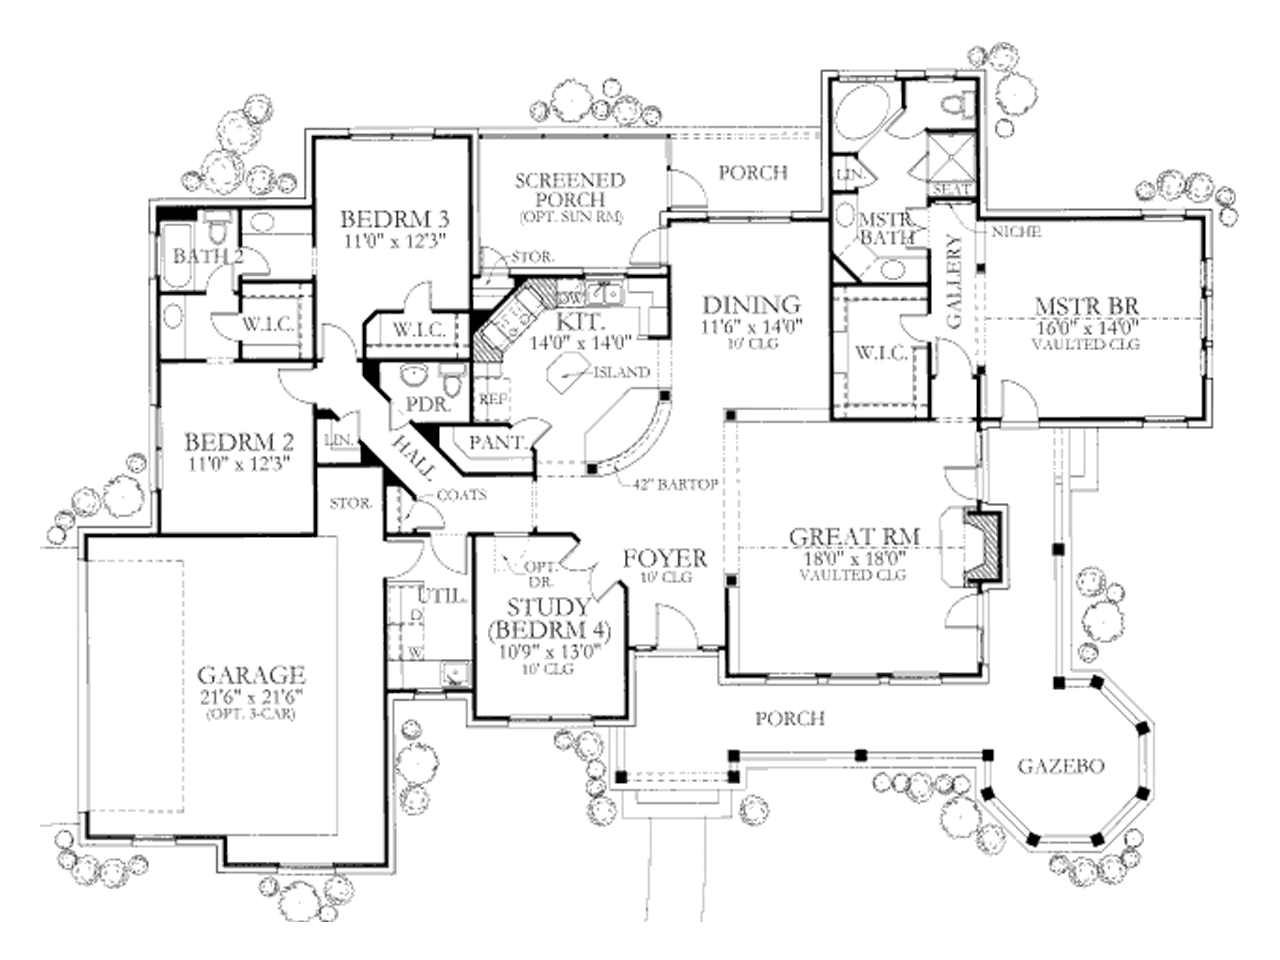 Country Style House Plan 4 Beds 2 5 Baths 2184 Sq Ft Plan 80 119 Country Style House Plans Floor Plan Layout House Plans